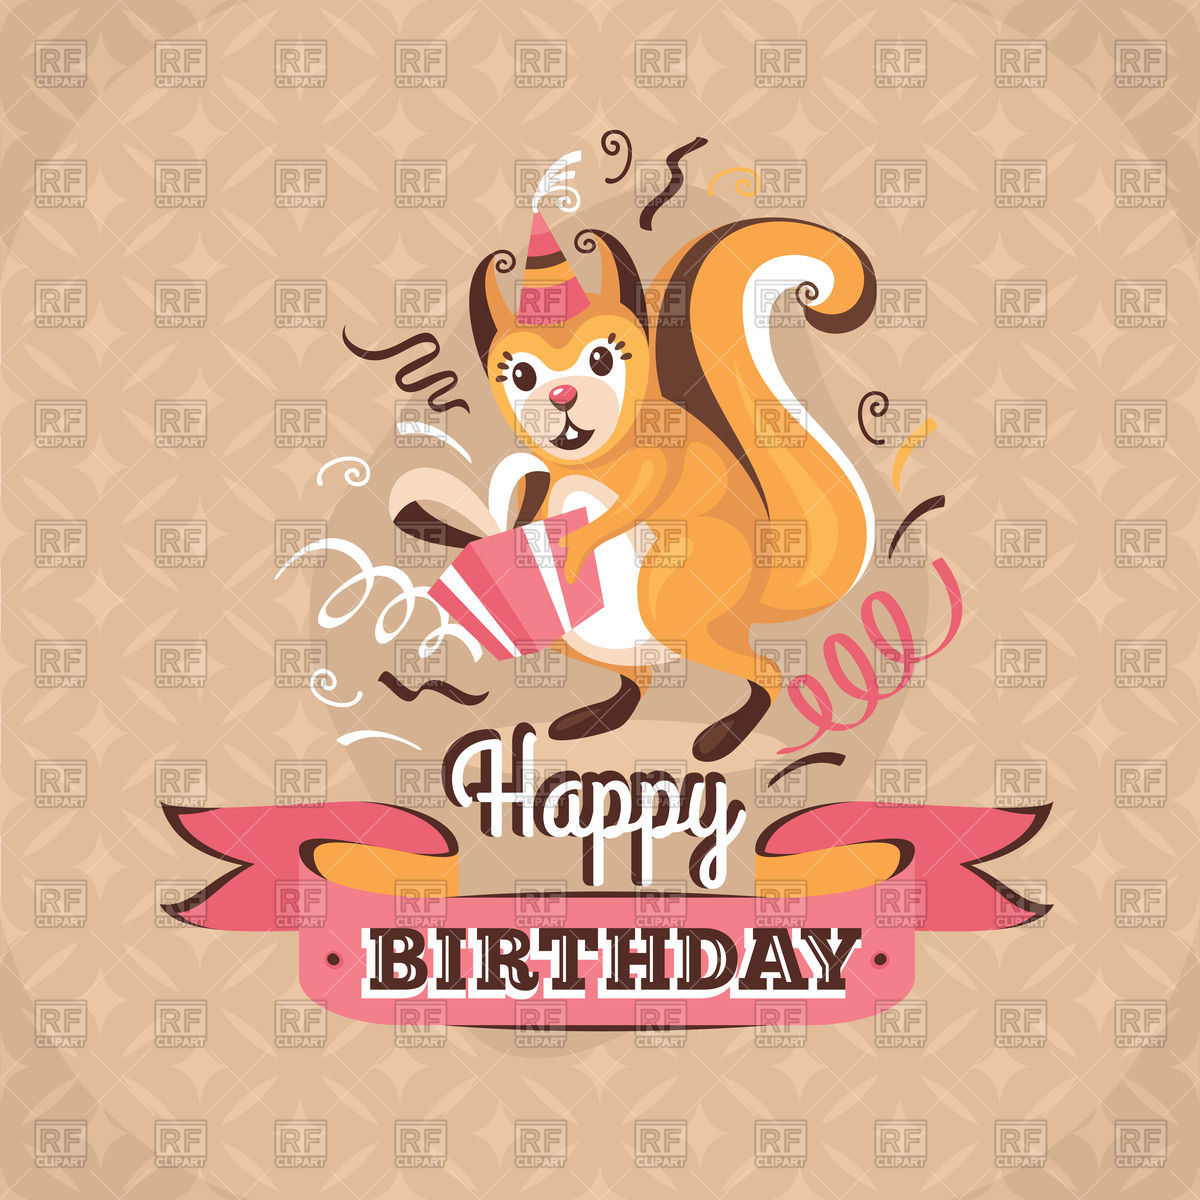 vintage birthday clipart ; vintage-birthday-card-with-squirrel-and-presents-Download-Royalty-free-Vector-File-EPS-129759